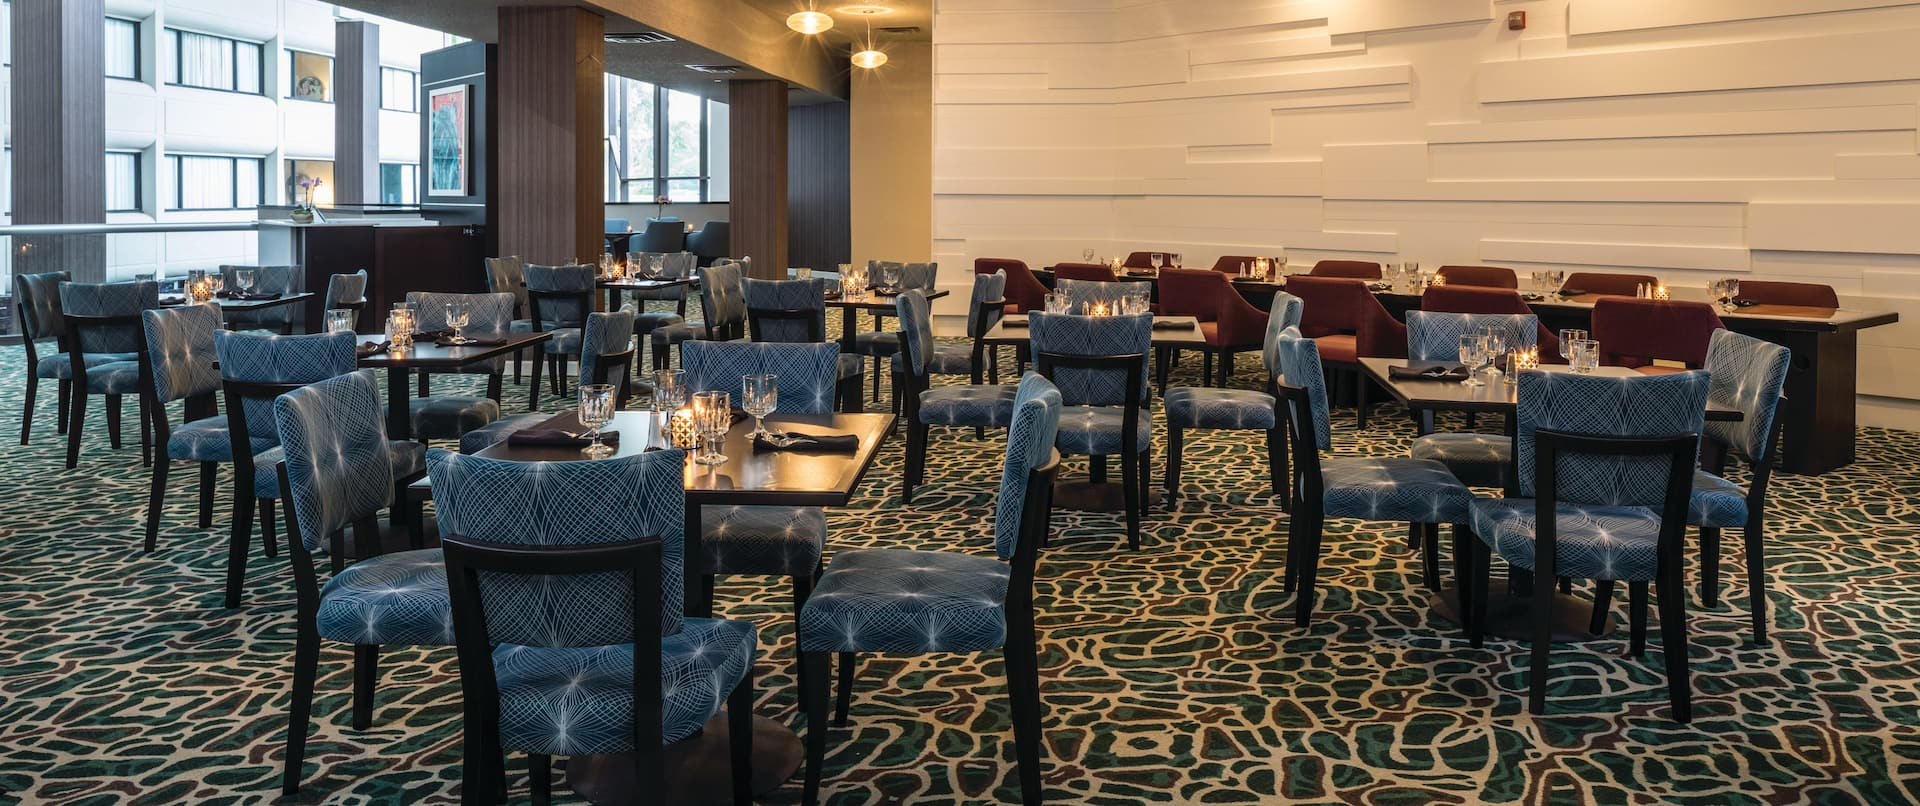 Chairs and tables set for dinner